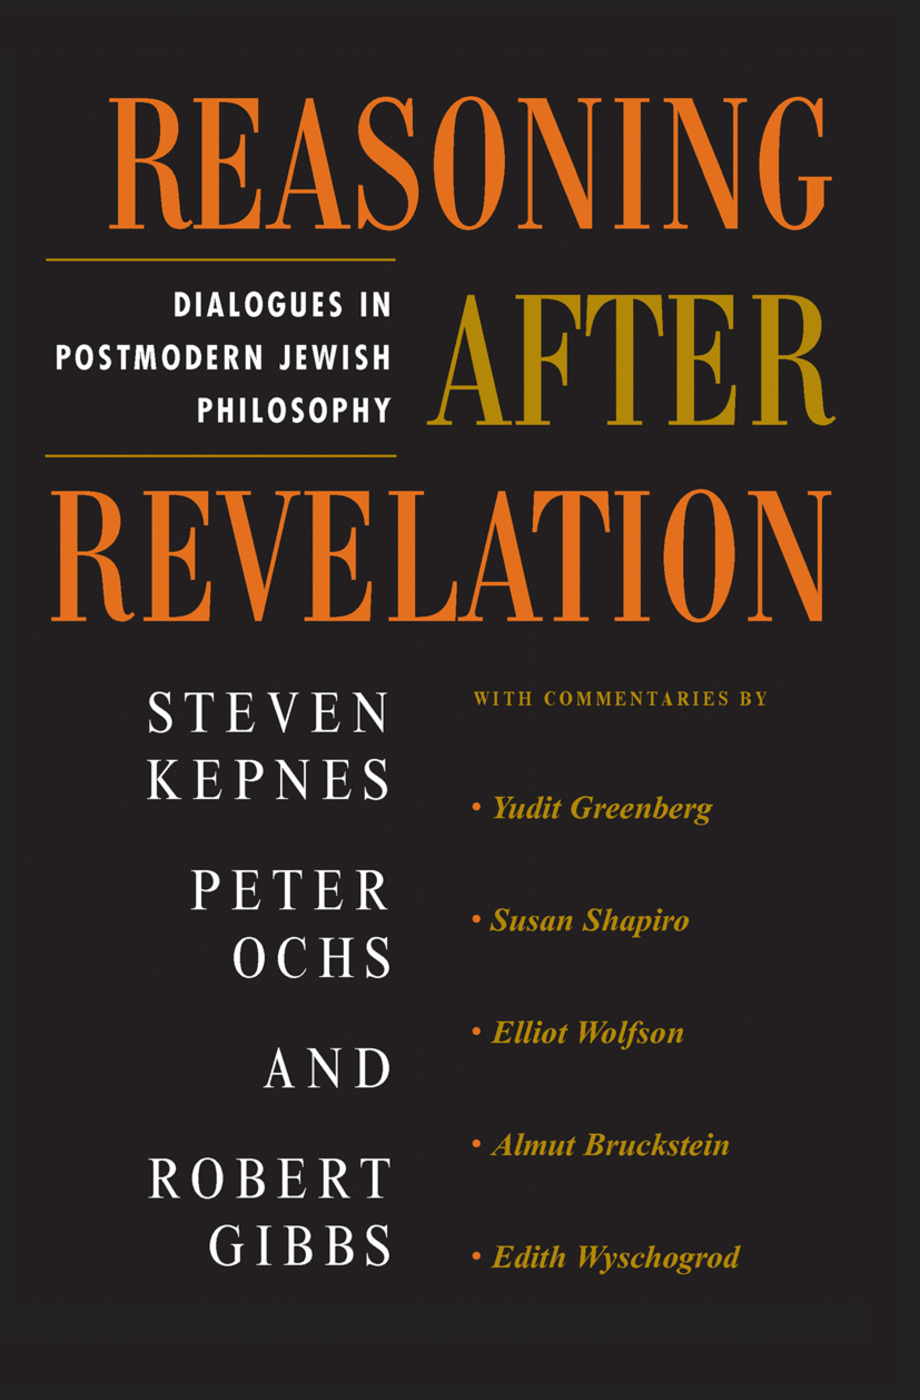 Reasoning After Revelation: Dialogues In Postmodern Jewish Philosophy book cover